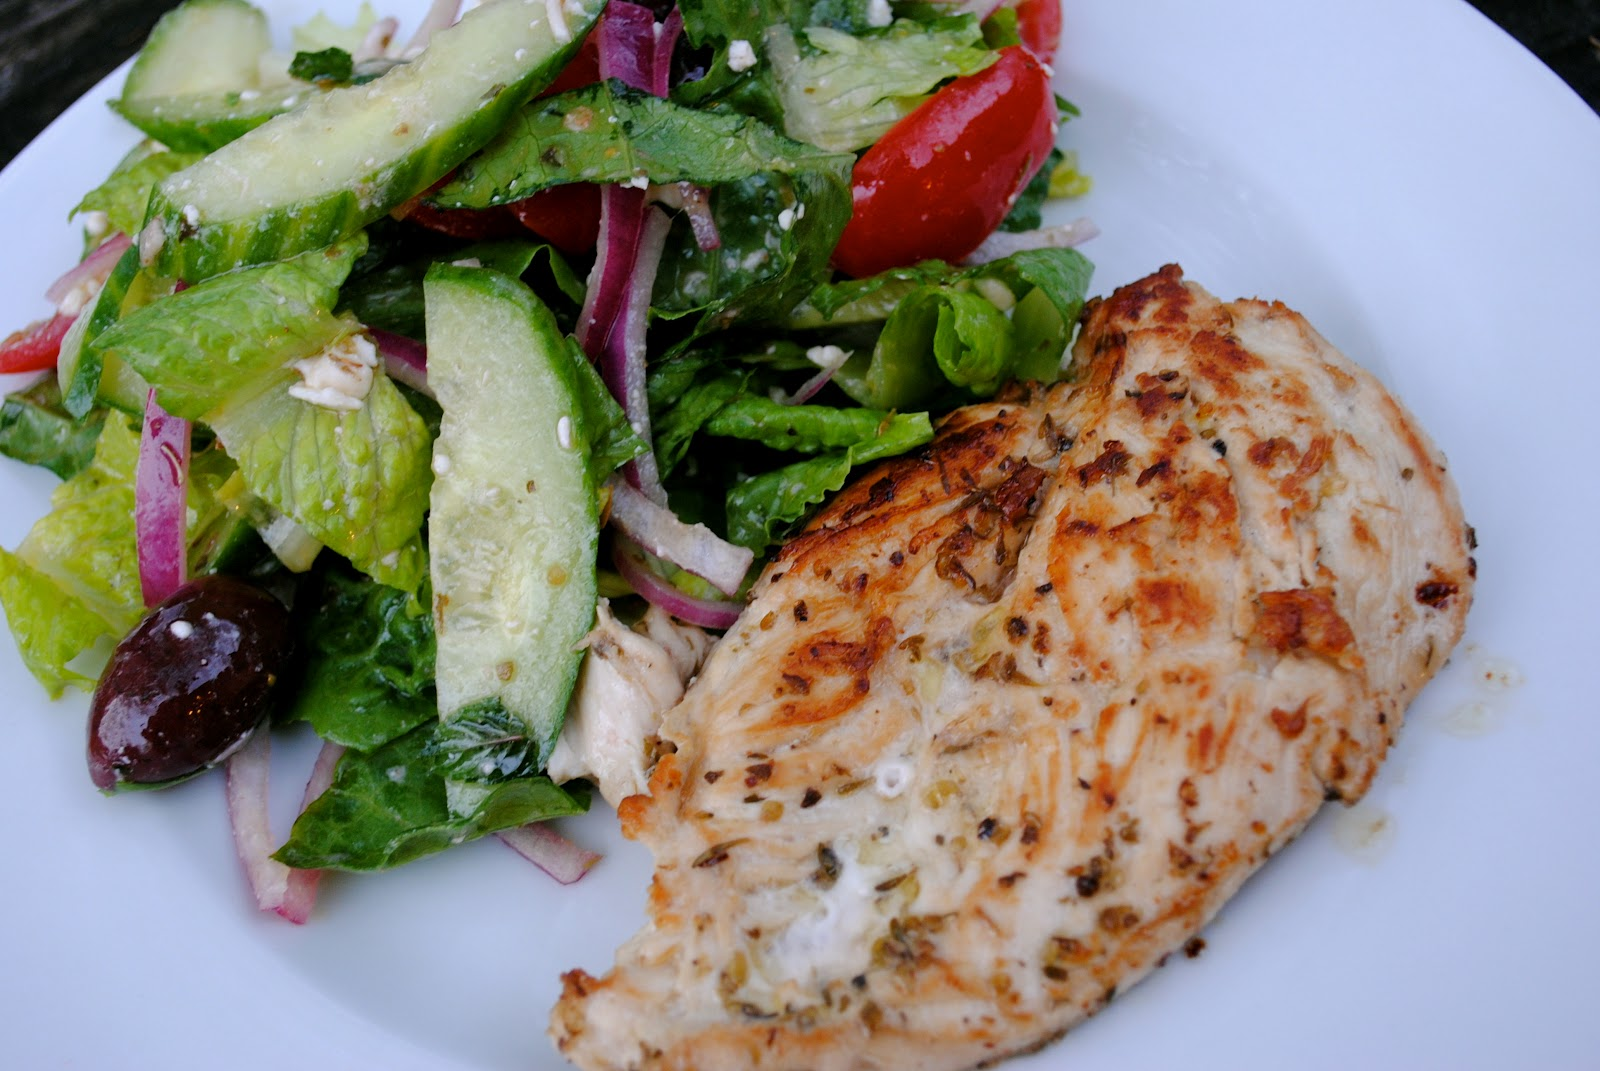 Grilled Chicken Paillards With Mint Salad Recipes — Dishmaps